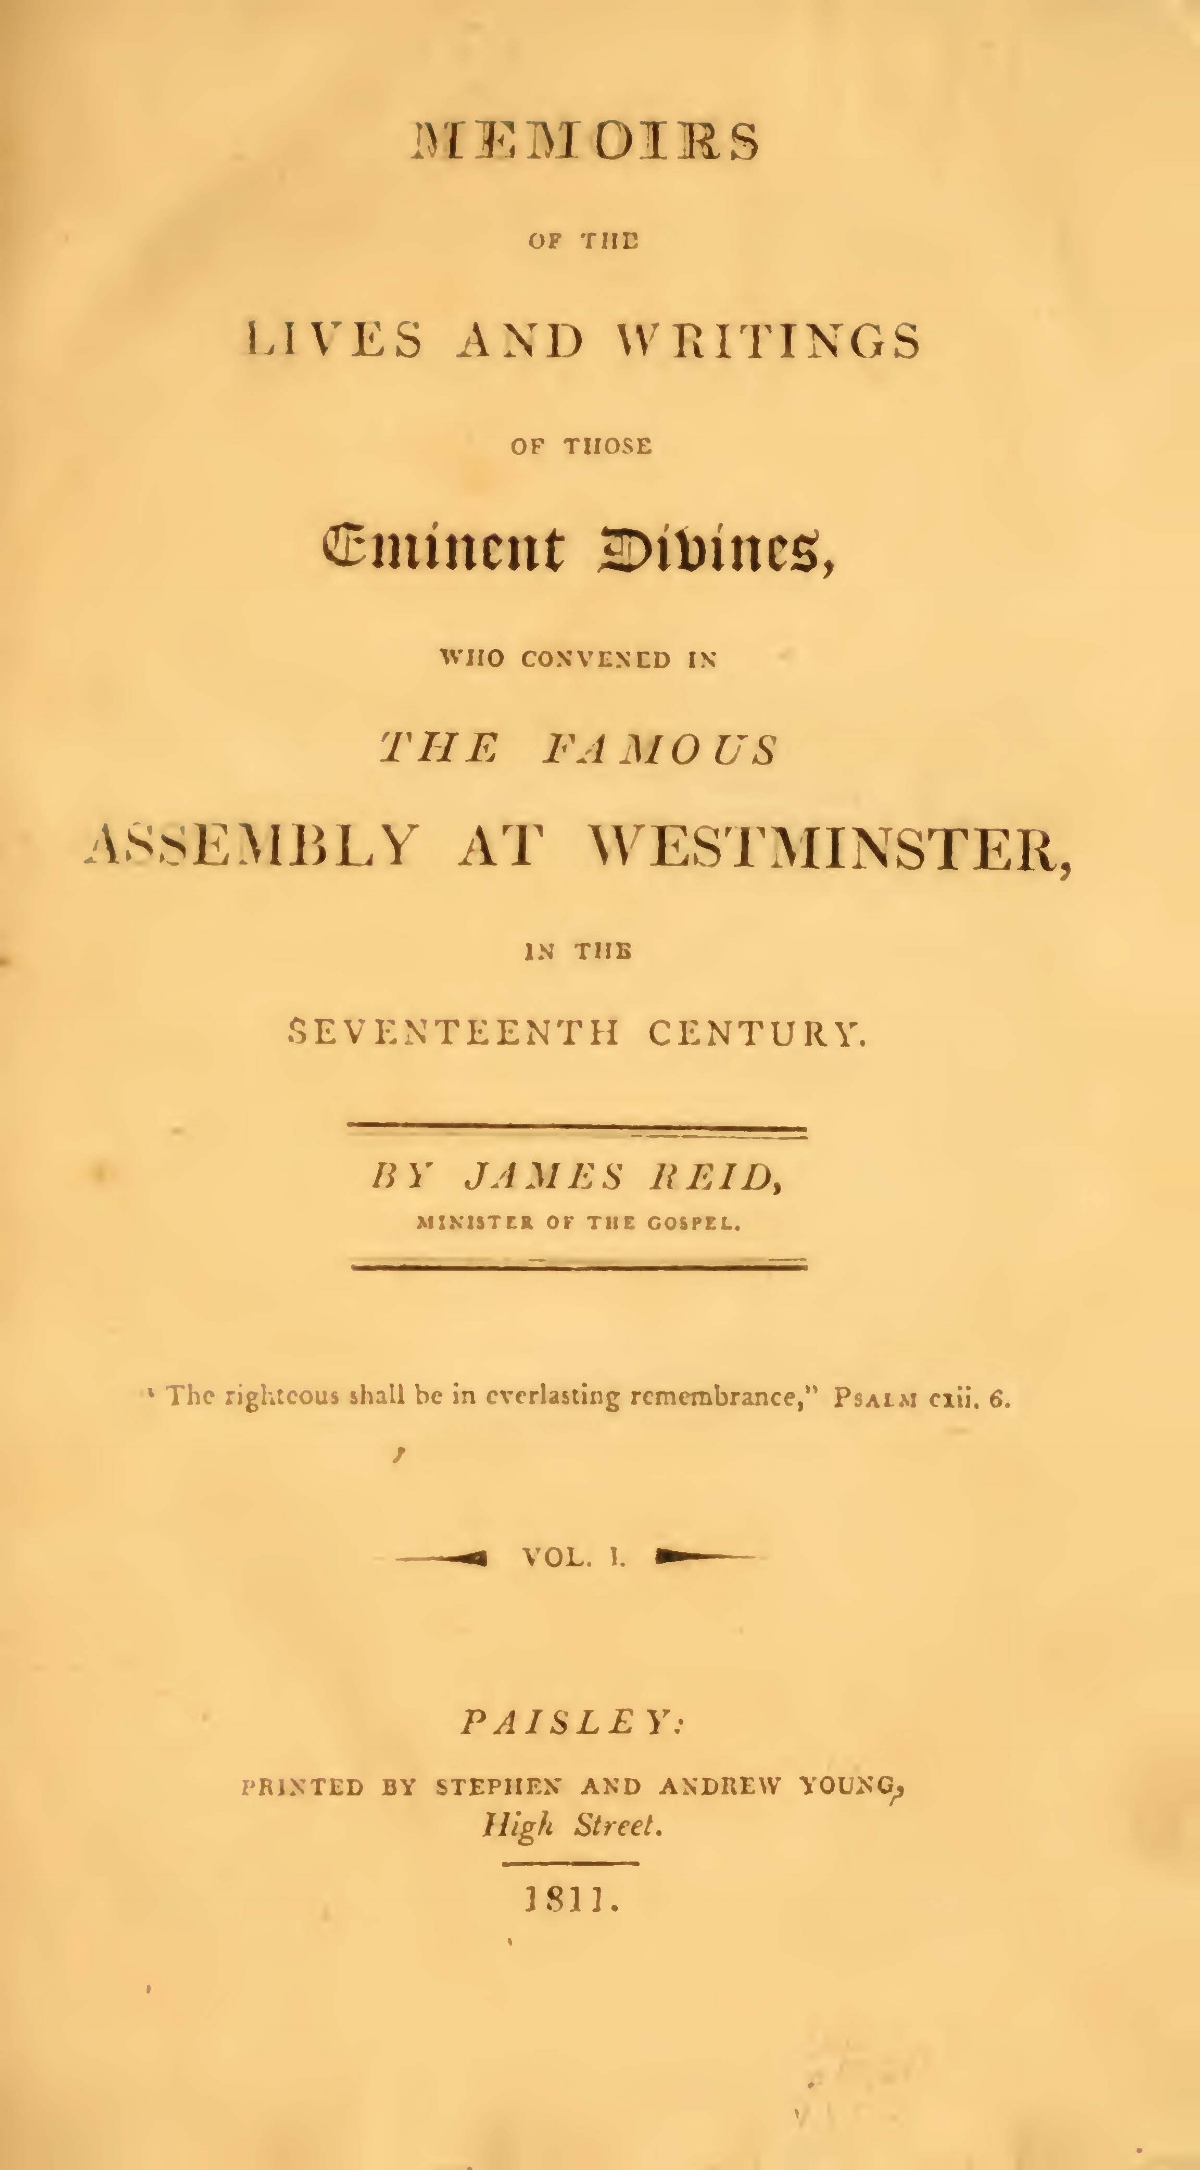 Reid, James, Memoirs of the Lives and Writings of the Westminster Divines, Vol. 1 Title Page.jpg